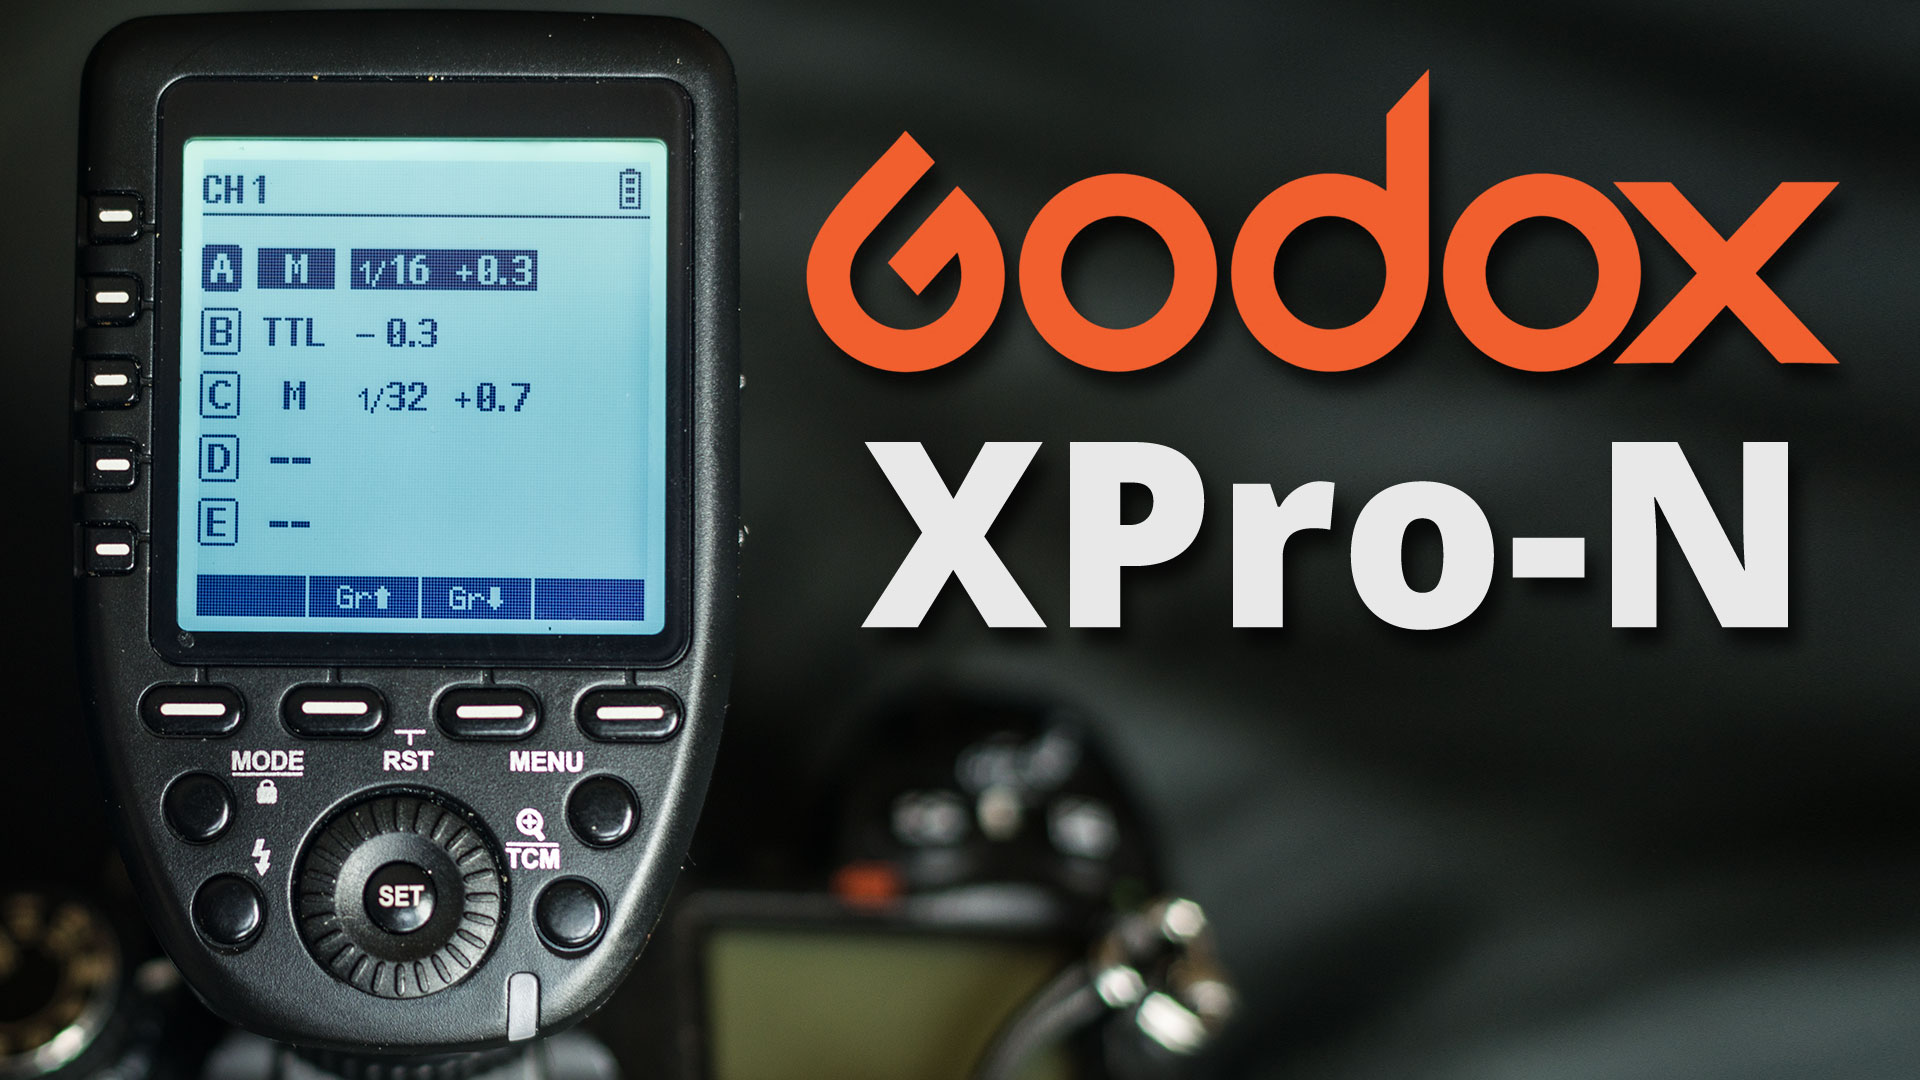 Featured Archives John Aldred Godox Trigger Xpro For Canon Thoughts On Shooting Using Pixapro St Iv Flash